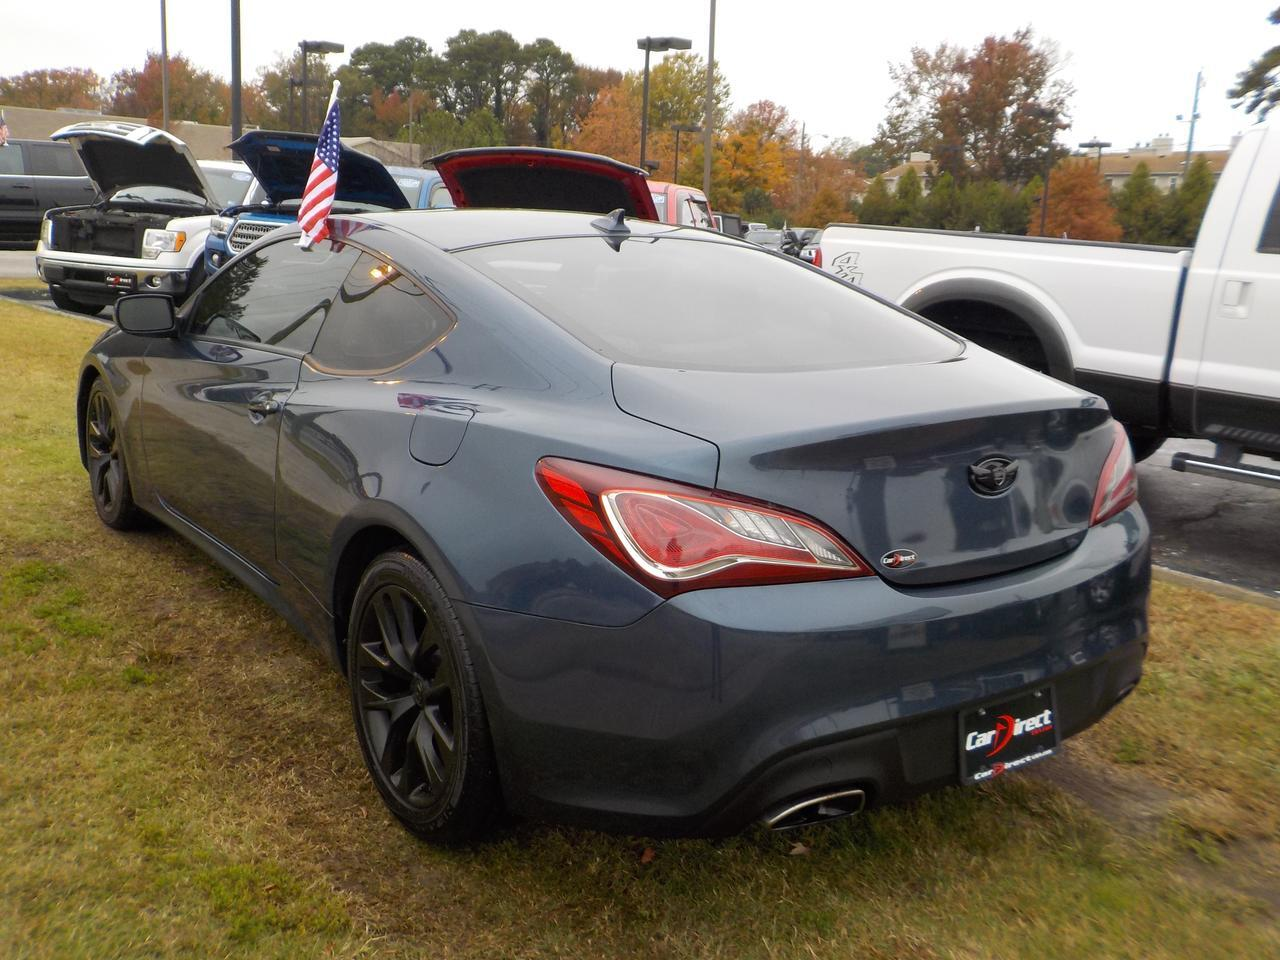 2013 HYUNDAI GENESIS 2.0T COUPE, WARRANTY, LEATHER, NAVIGATION, SUNROOF, BLUETOOTH, SAT RADIO, KEYLESS START! Virginia Beach VA